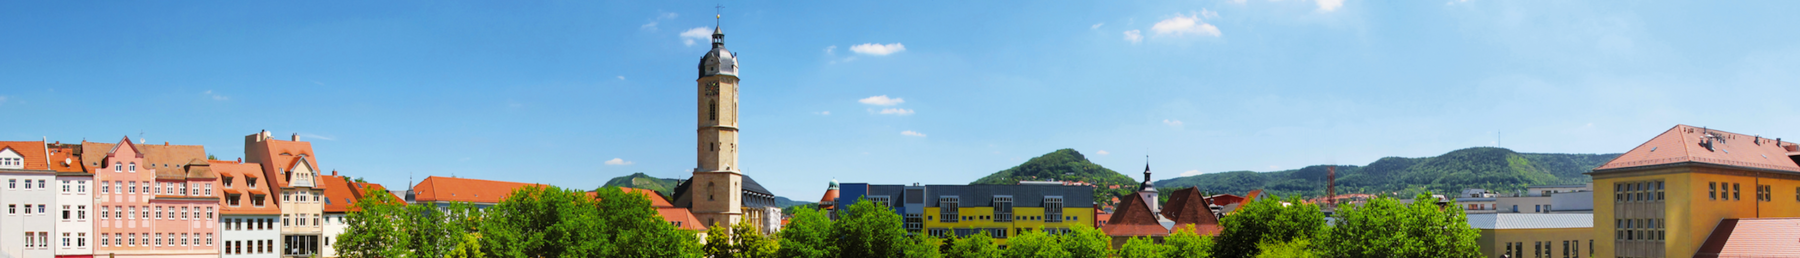 Panoramic view on the Eichplatz in Jena from the viewing platform of the JenTower, viewing direction to the market square